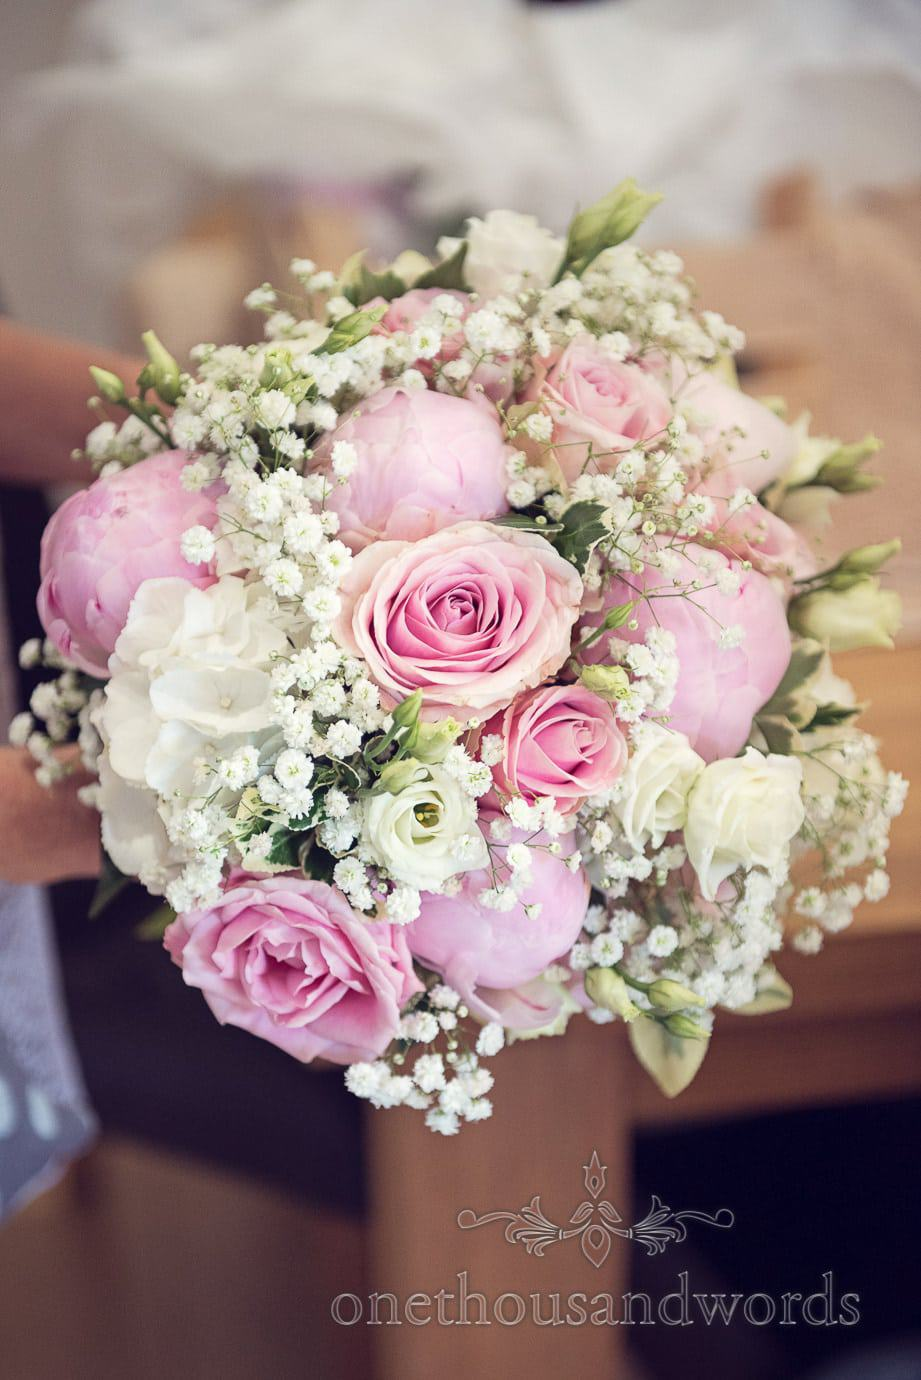 Soft pastel pink and white rose weddign bouquet by Wild Berry Flowers, Dorset